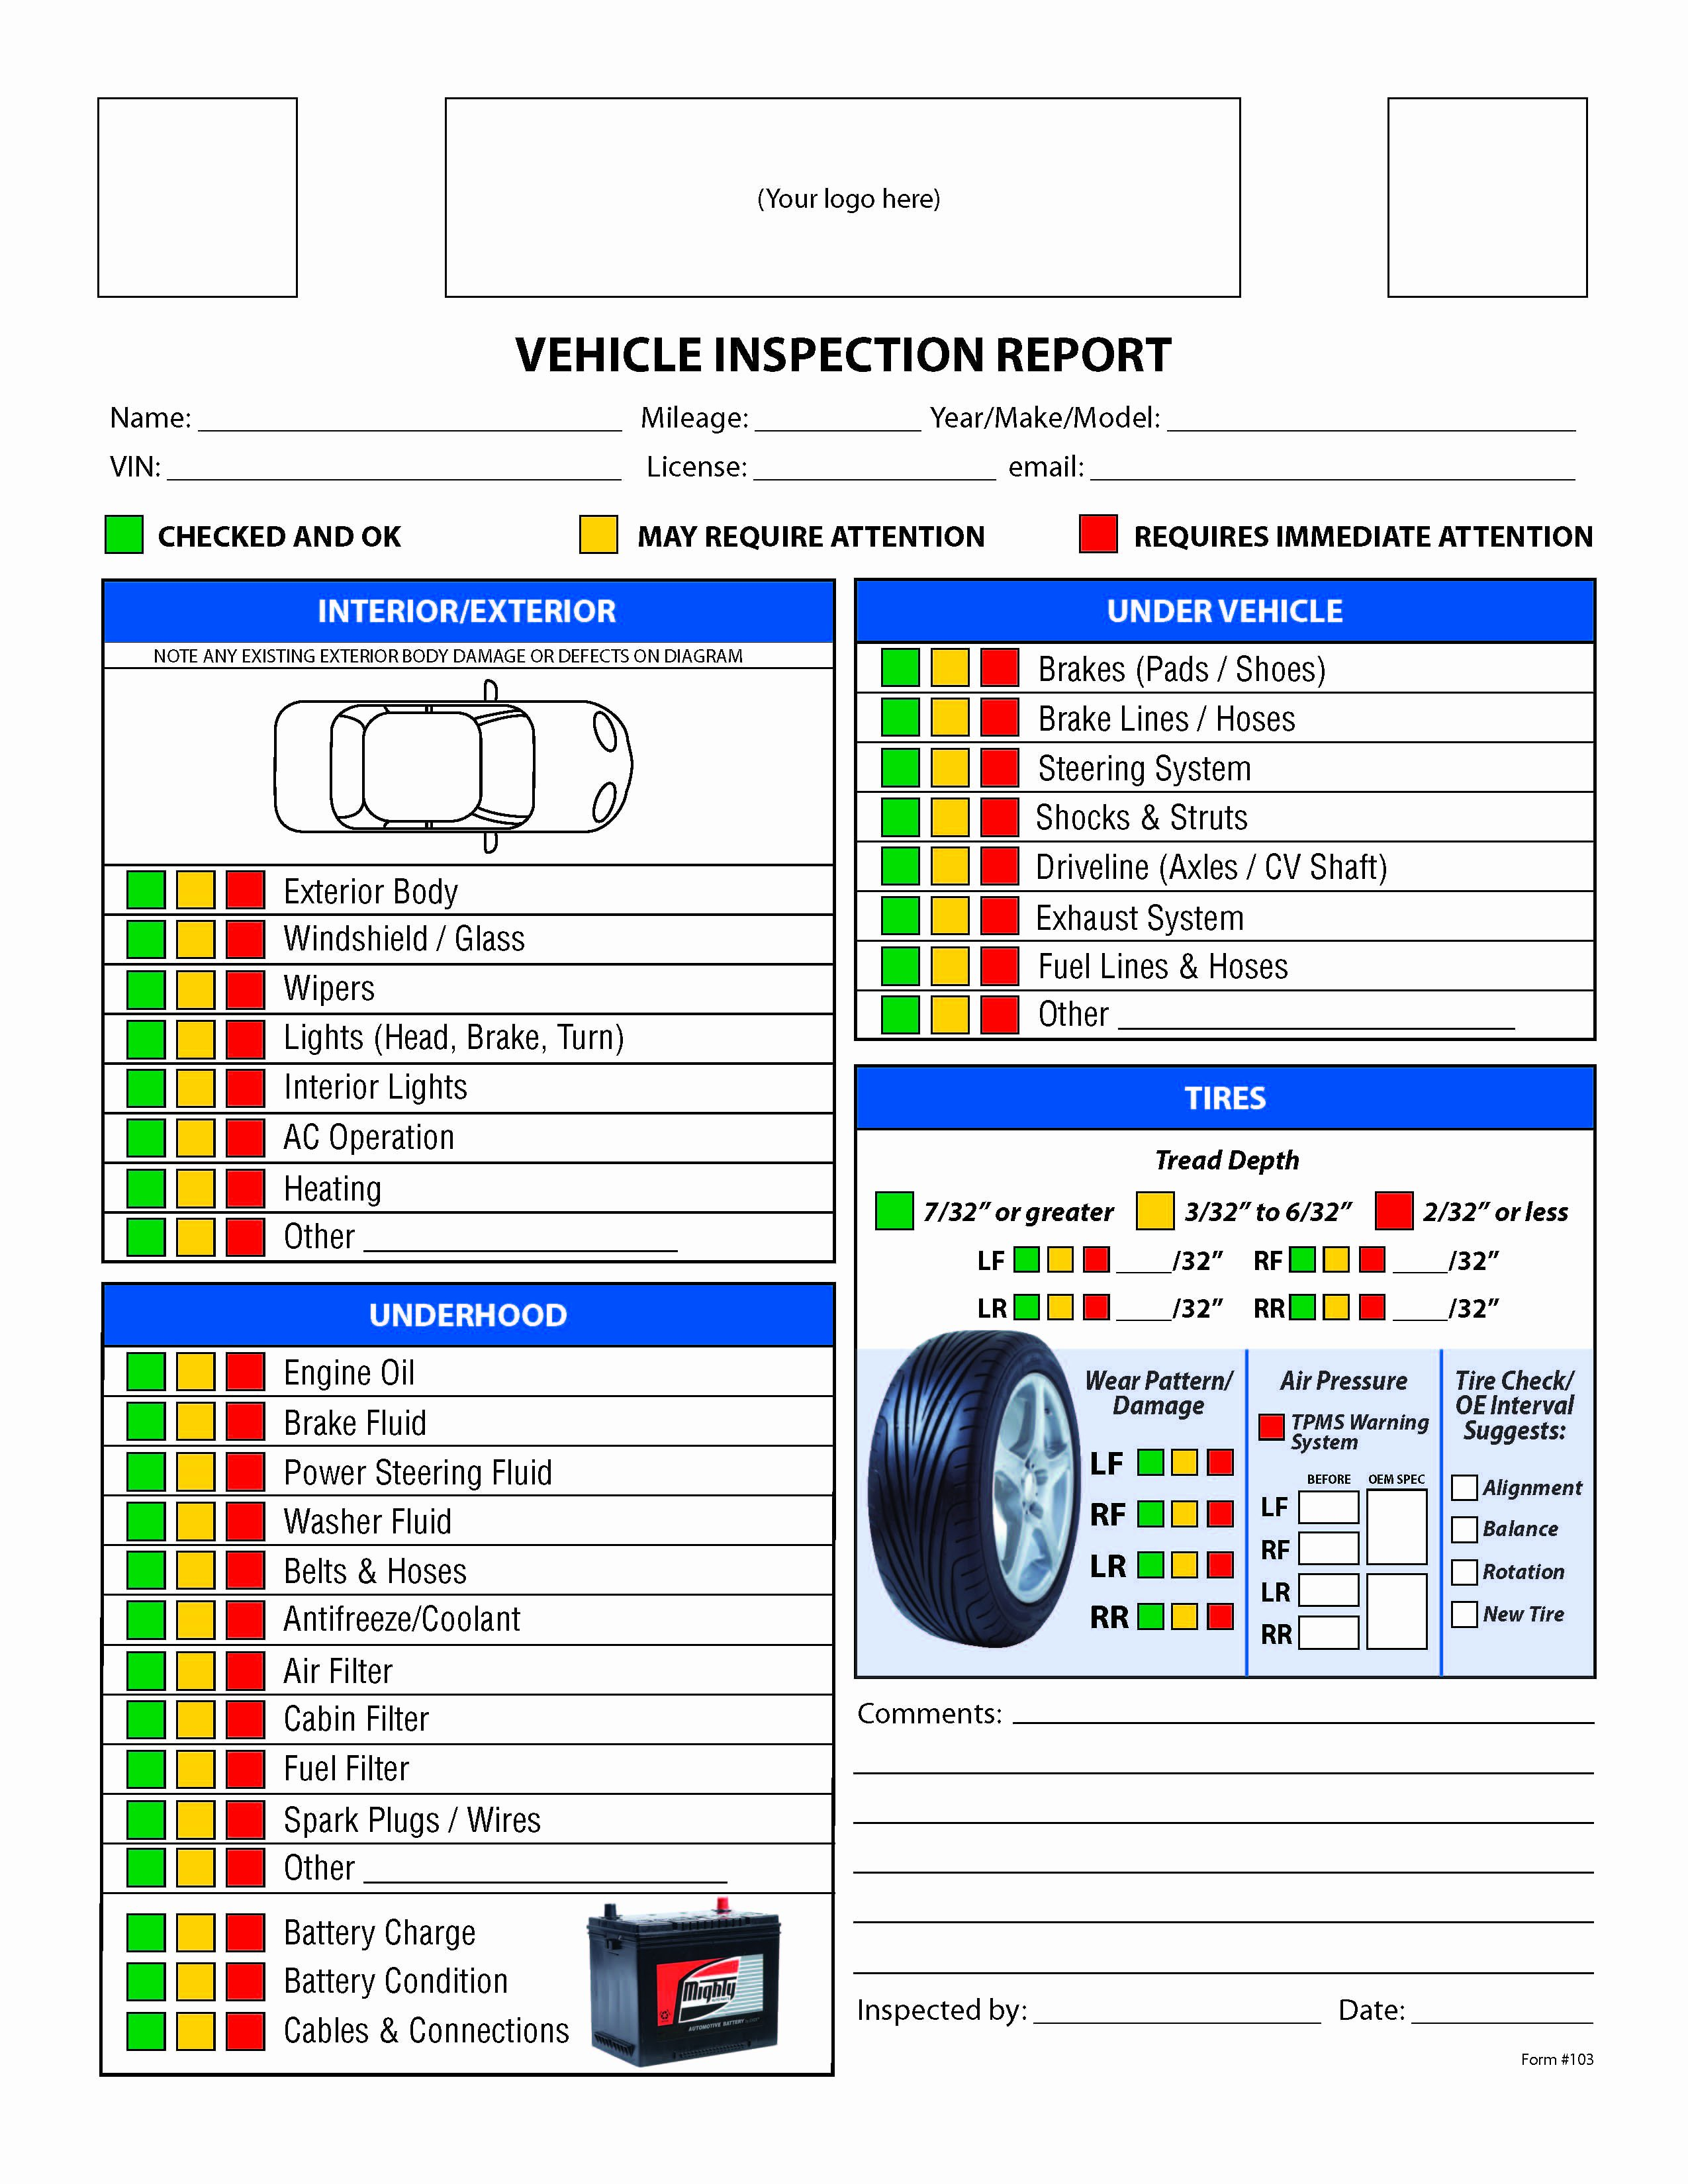 Vehicle Safety Inspection Checklist Template Unique Free Vehicle Inspection Checklist form